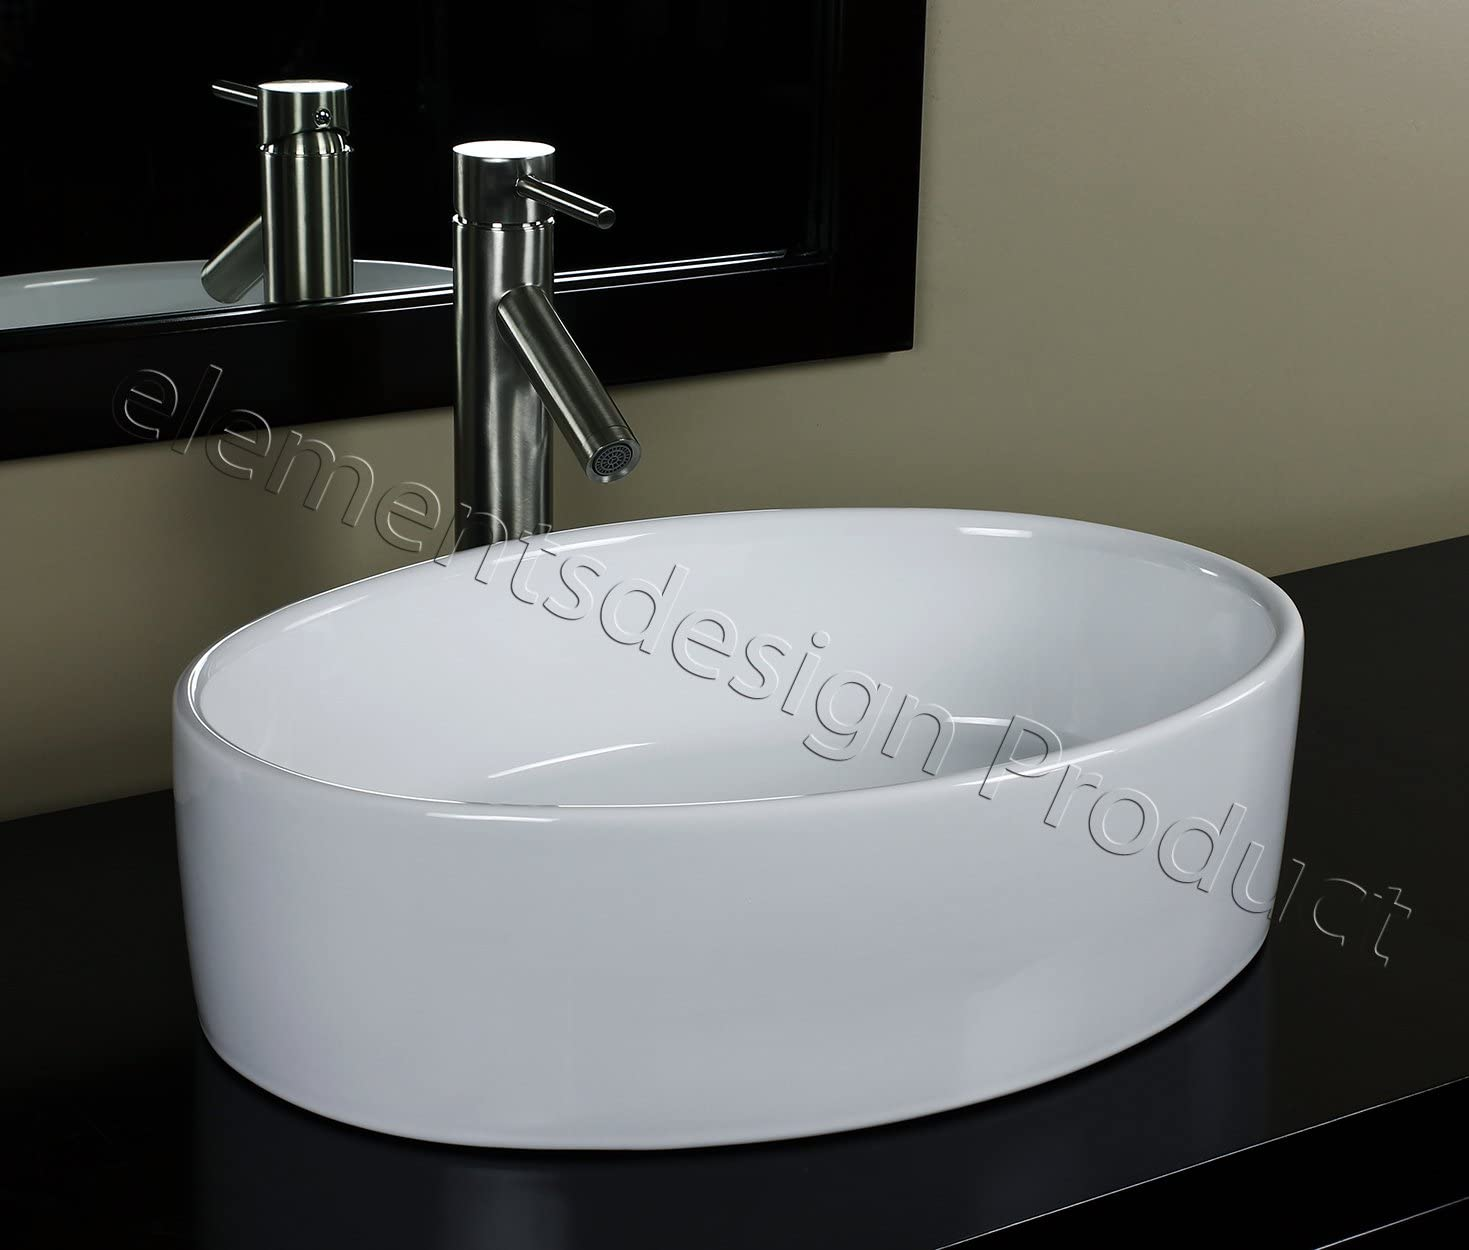 Bathroom Ceramic Vessel Max 72% OFF Sink 7151L1 Max 84% OFF With Nickel Faucet Brushed